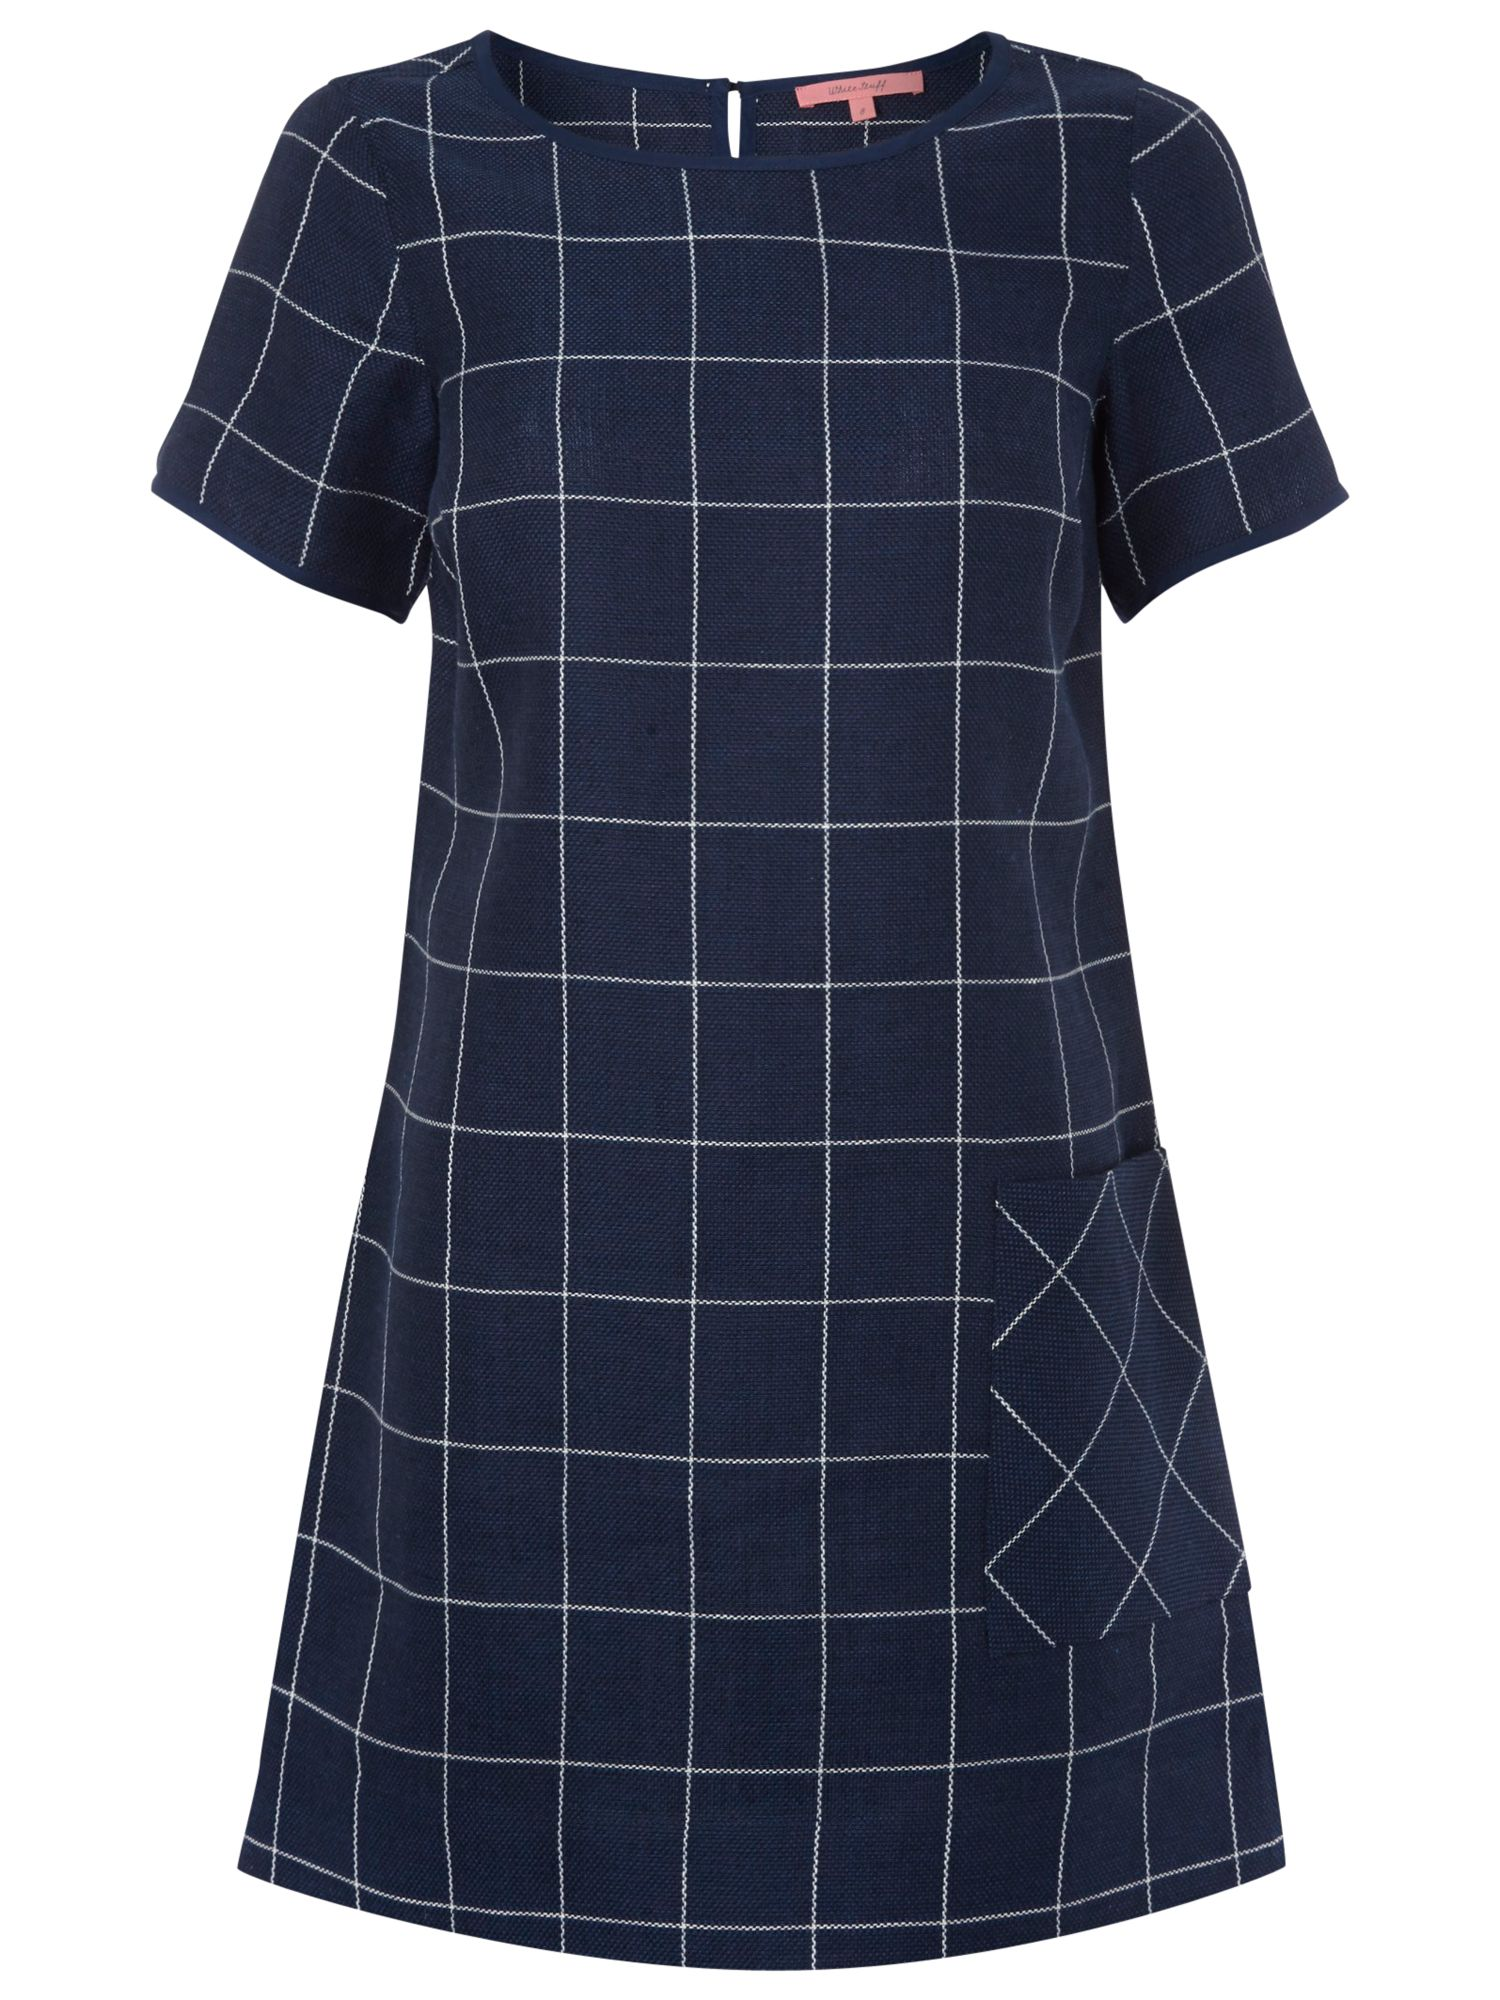 white stuff echo tunic dress navy, white, stuff, echo, tunic, dress, navy, white stuff, 12|14, women, brands l-z, womens dresses, special offers, womenswear offers, womens dresses offers, latest reductions, 1833573